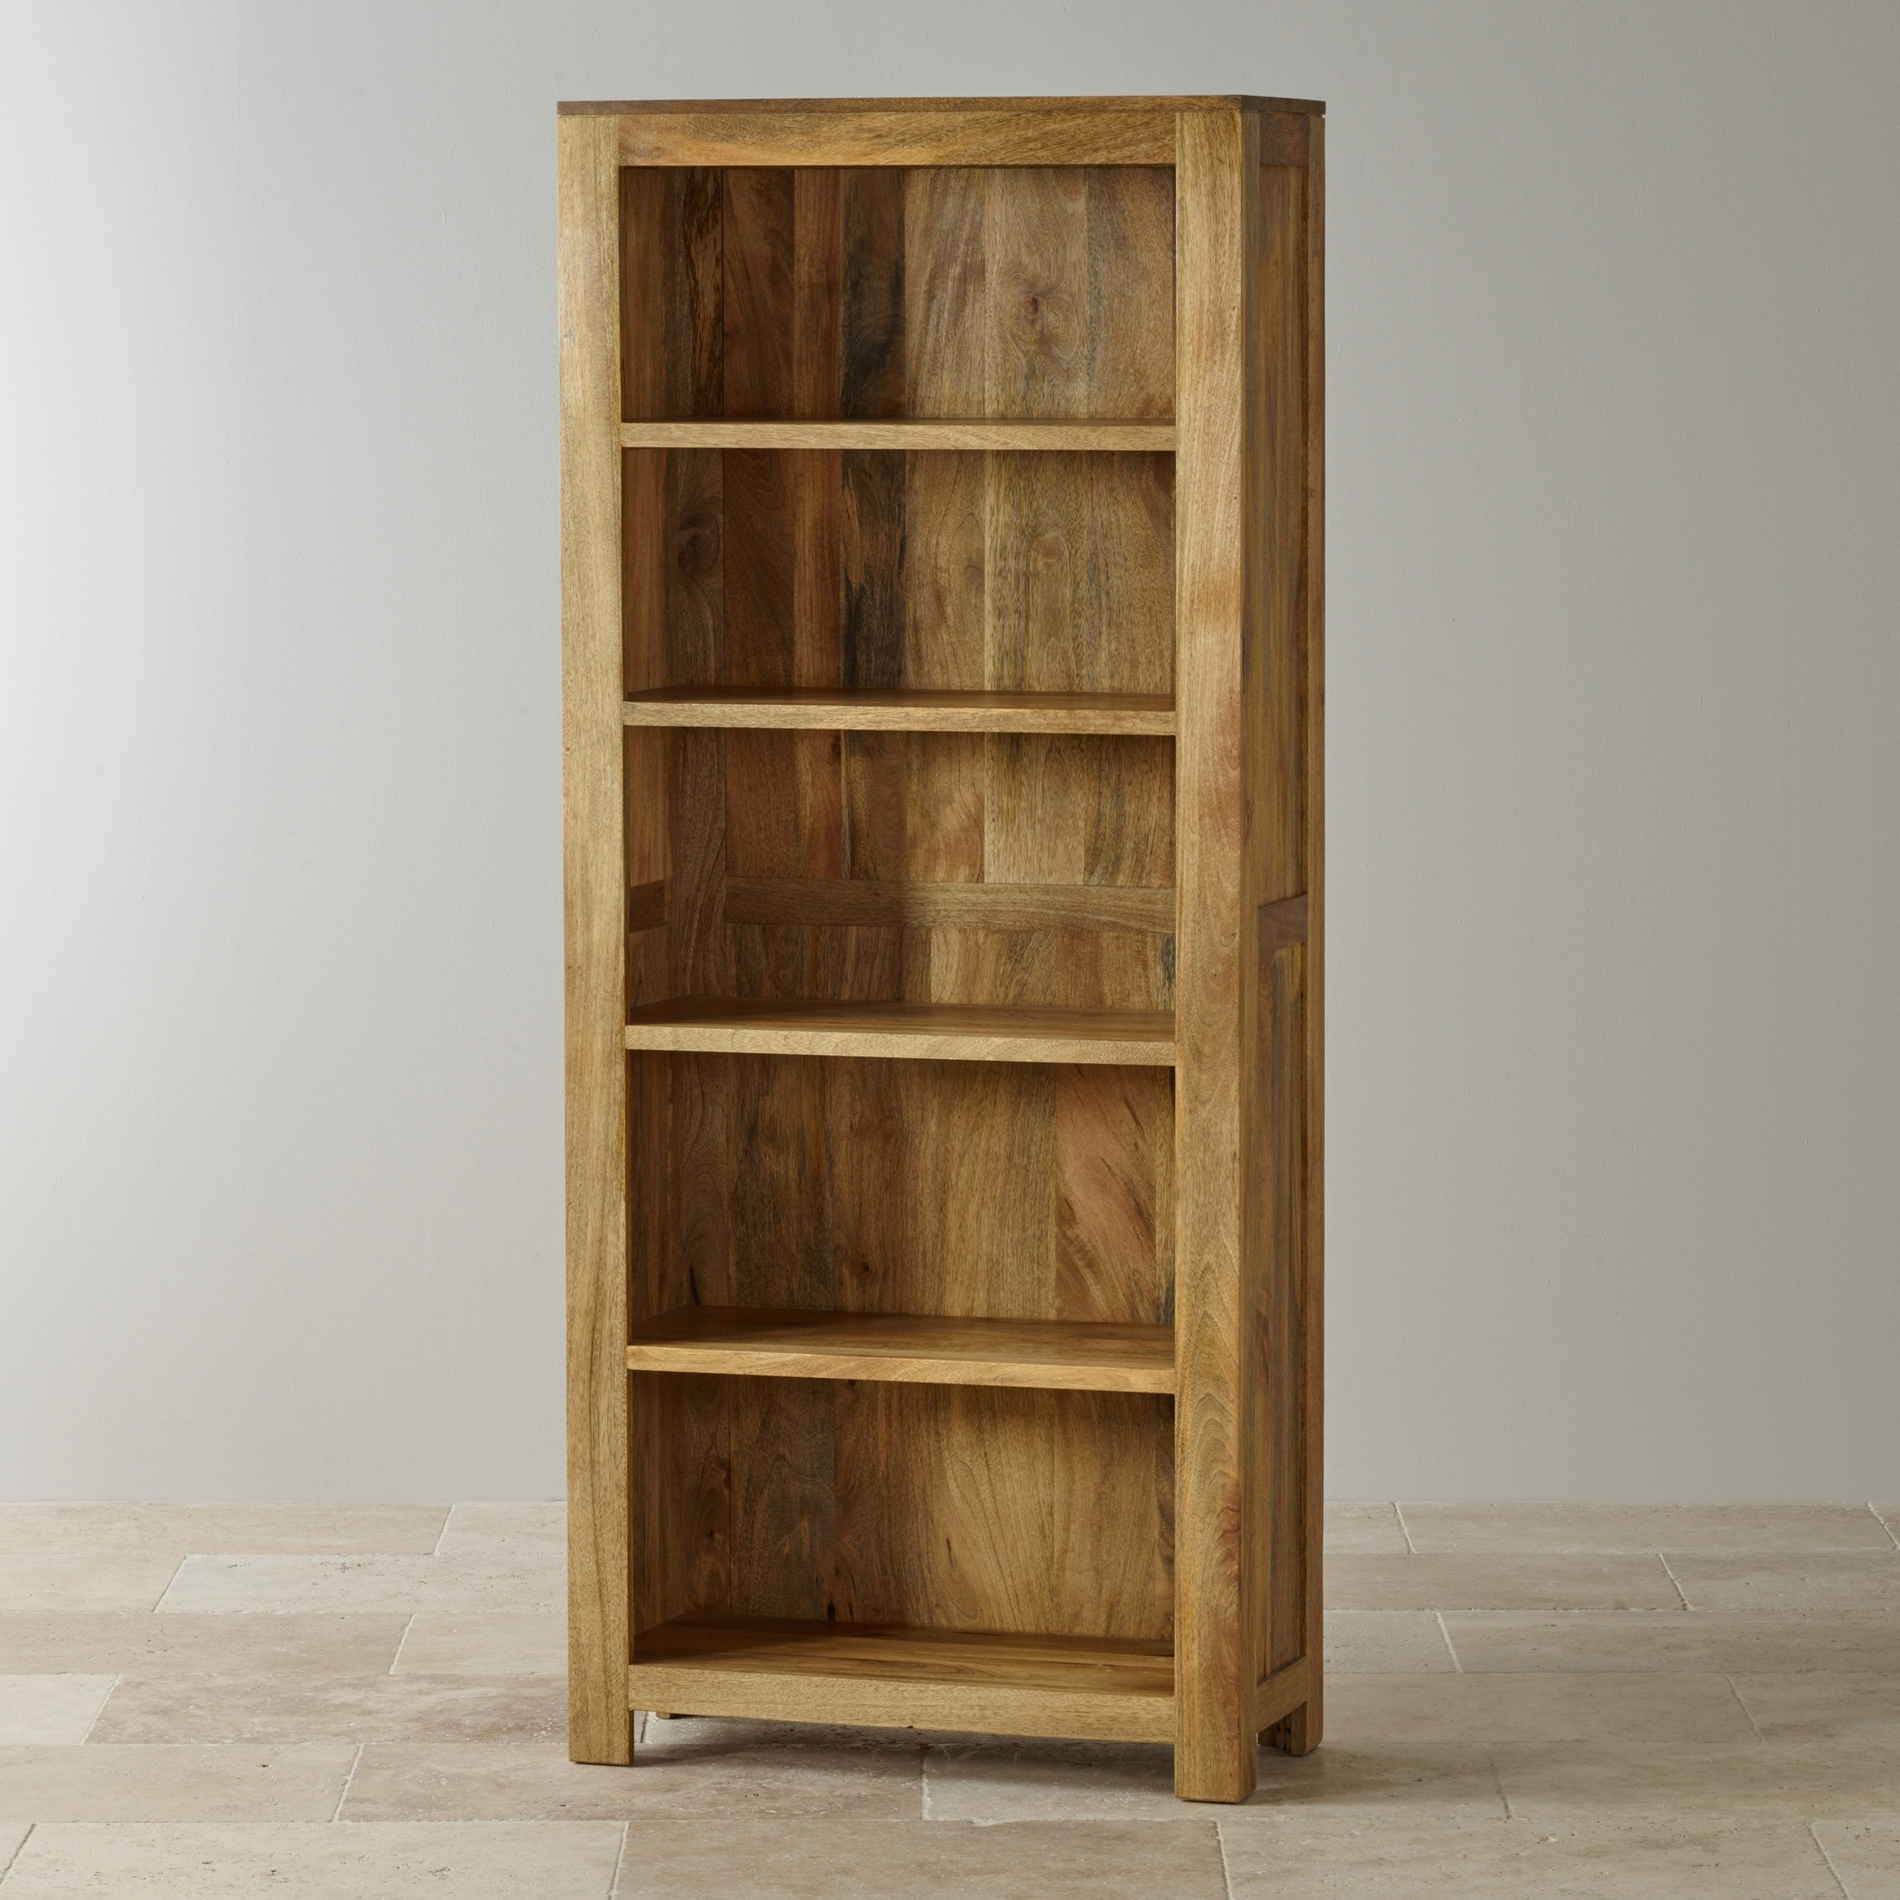 Ideas Collection Solid Wood Bookcases At Dutchcrafters In Real Regarding 2018 Real Wood Bookcases (View 11 of 15)